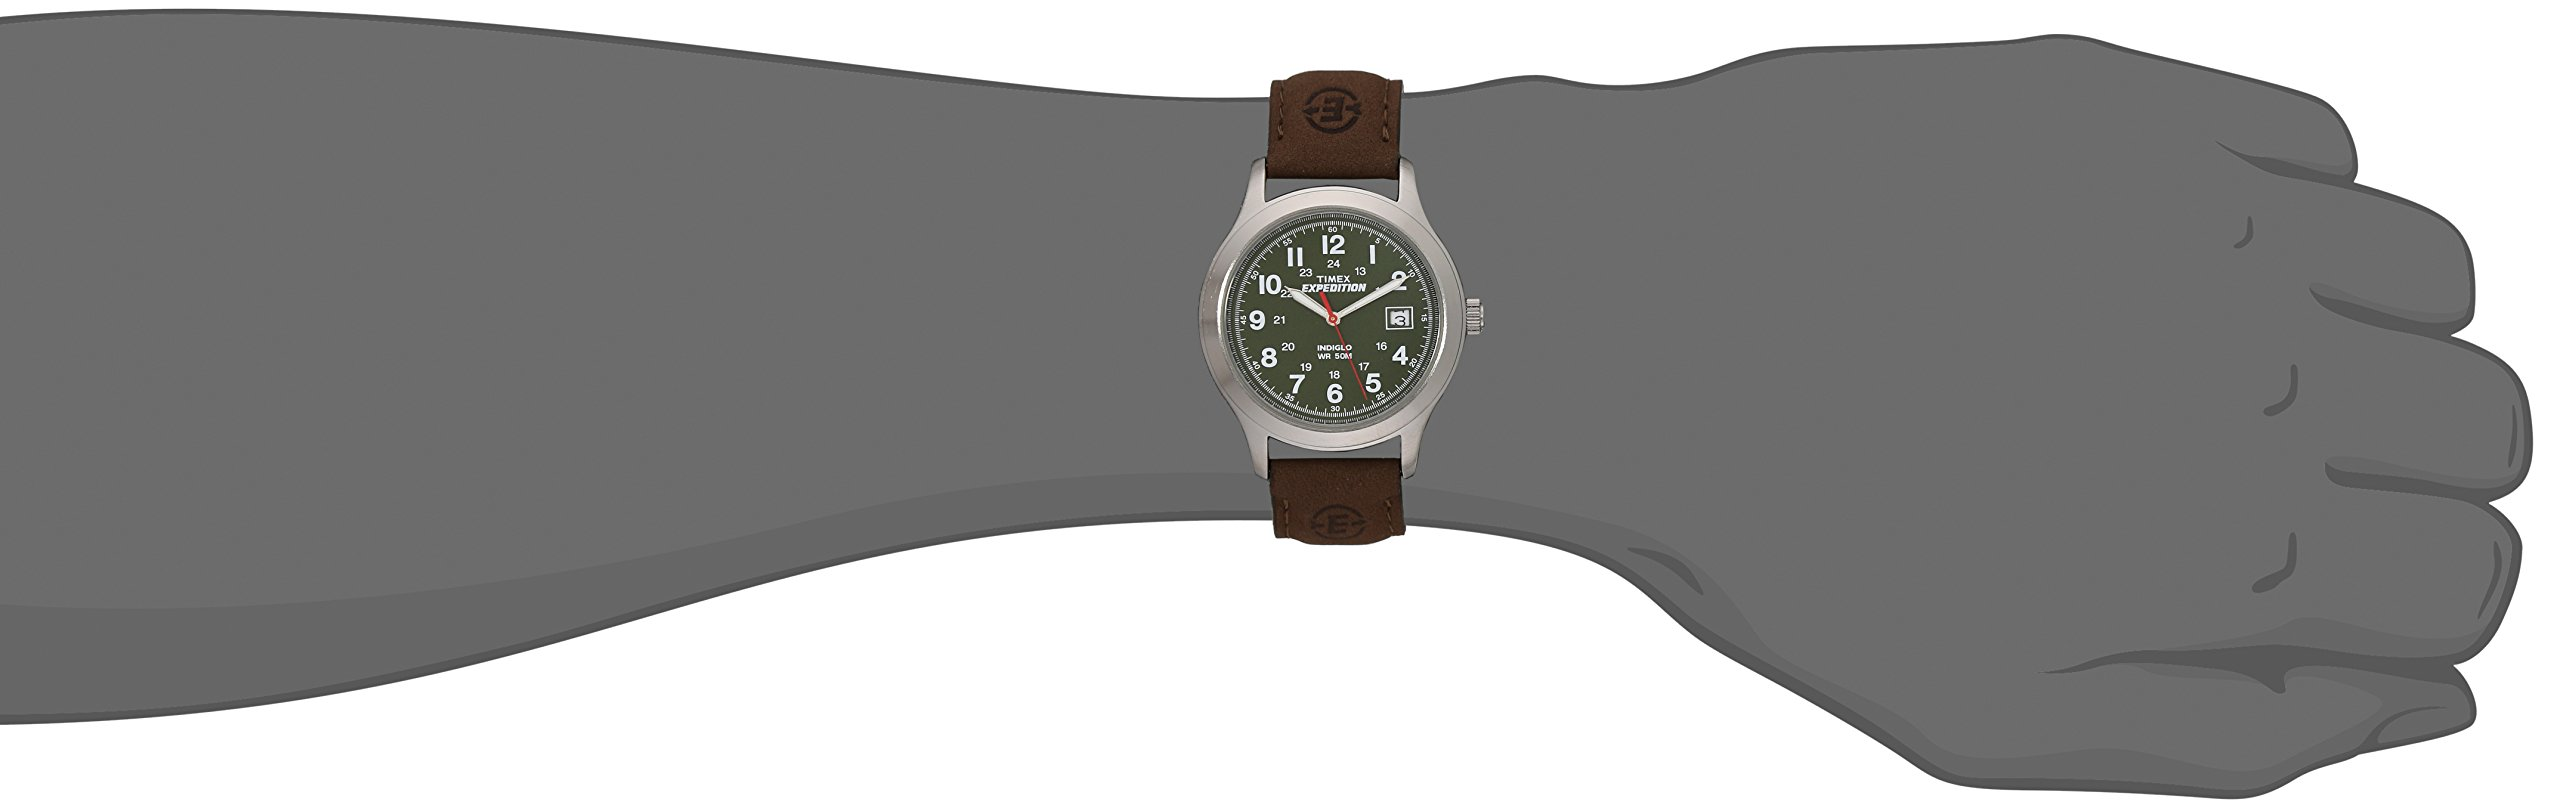 Timex Men's T40051 Expedition Metal Field Brown Leather Strap Watch by Timex (Image #3)